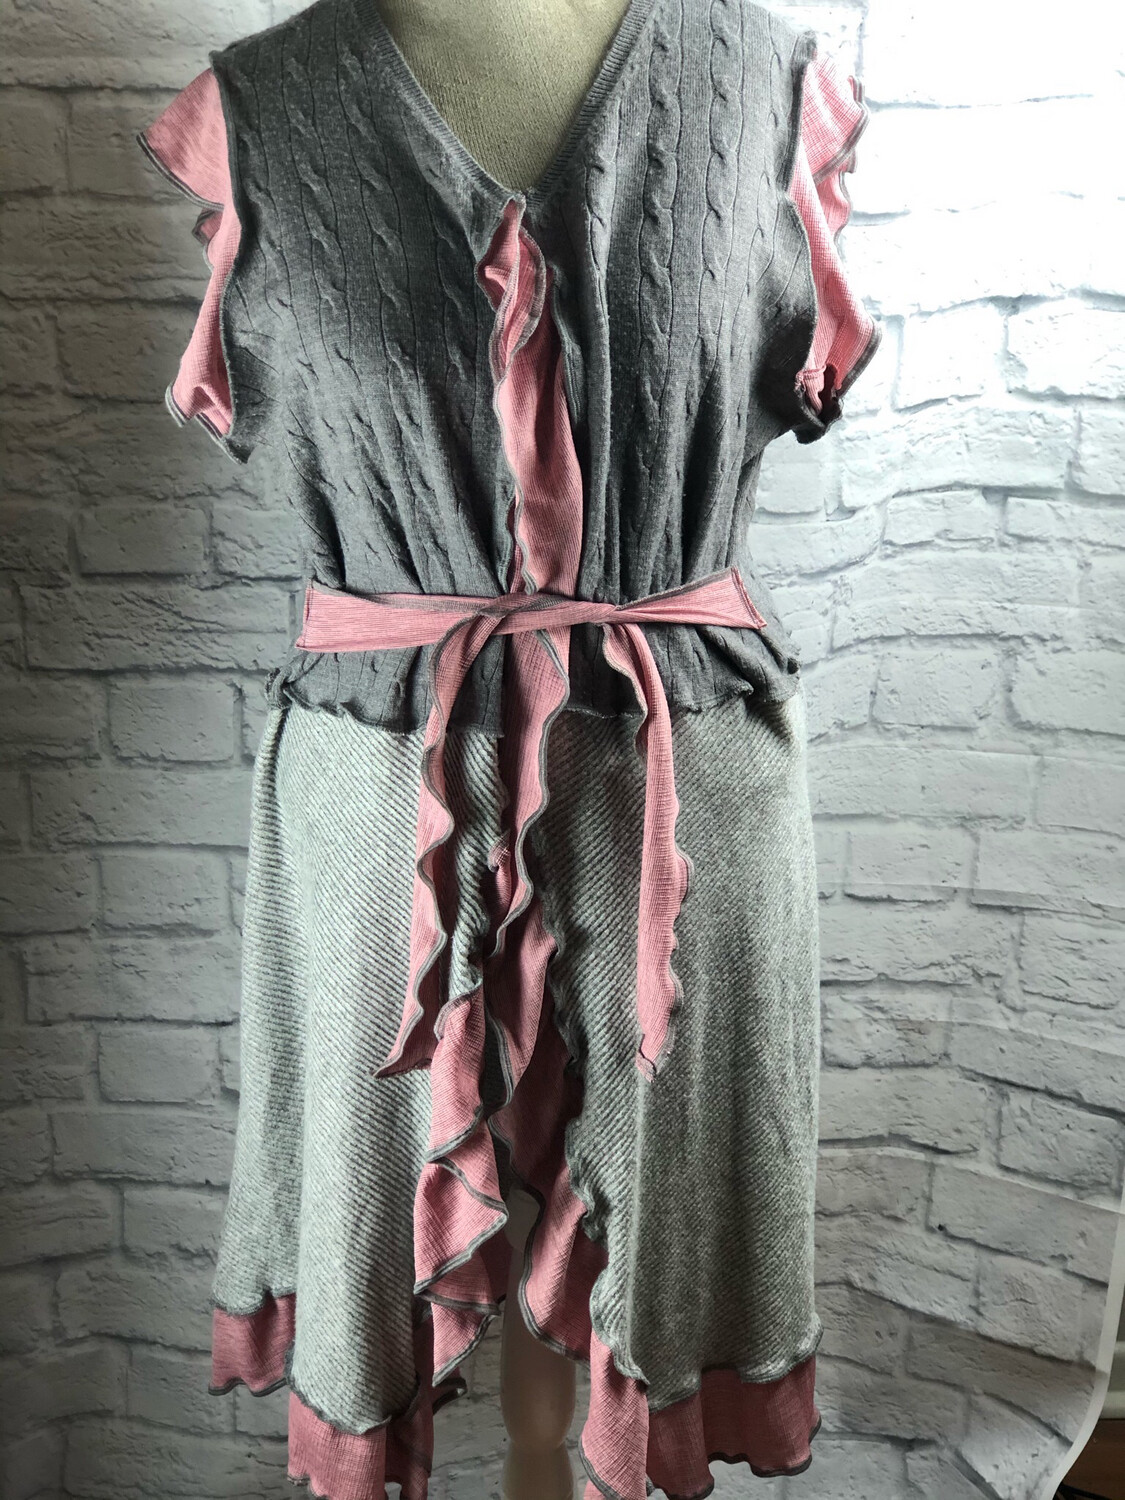 S Threads Upcycled Pink Gray Ruffle Tie Vest W Pockets Size 2X